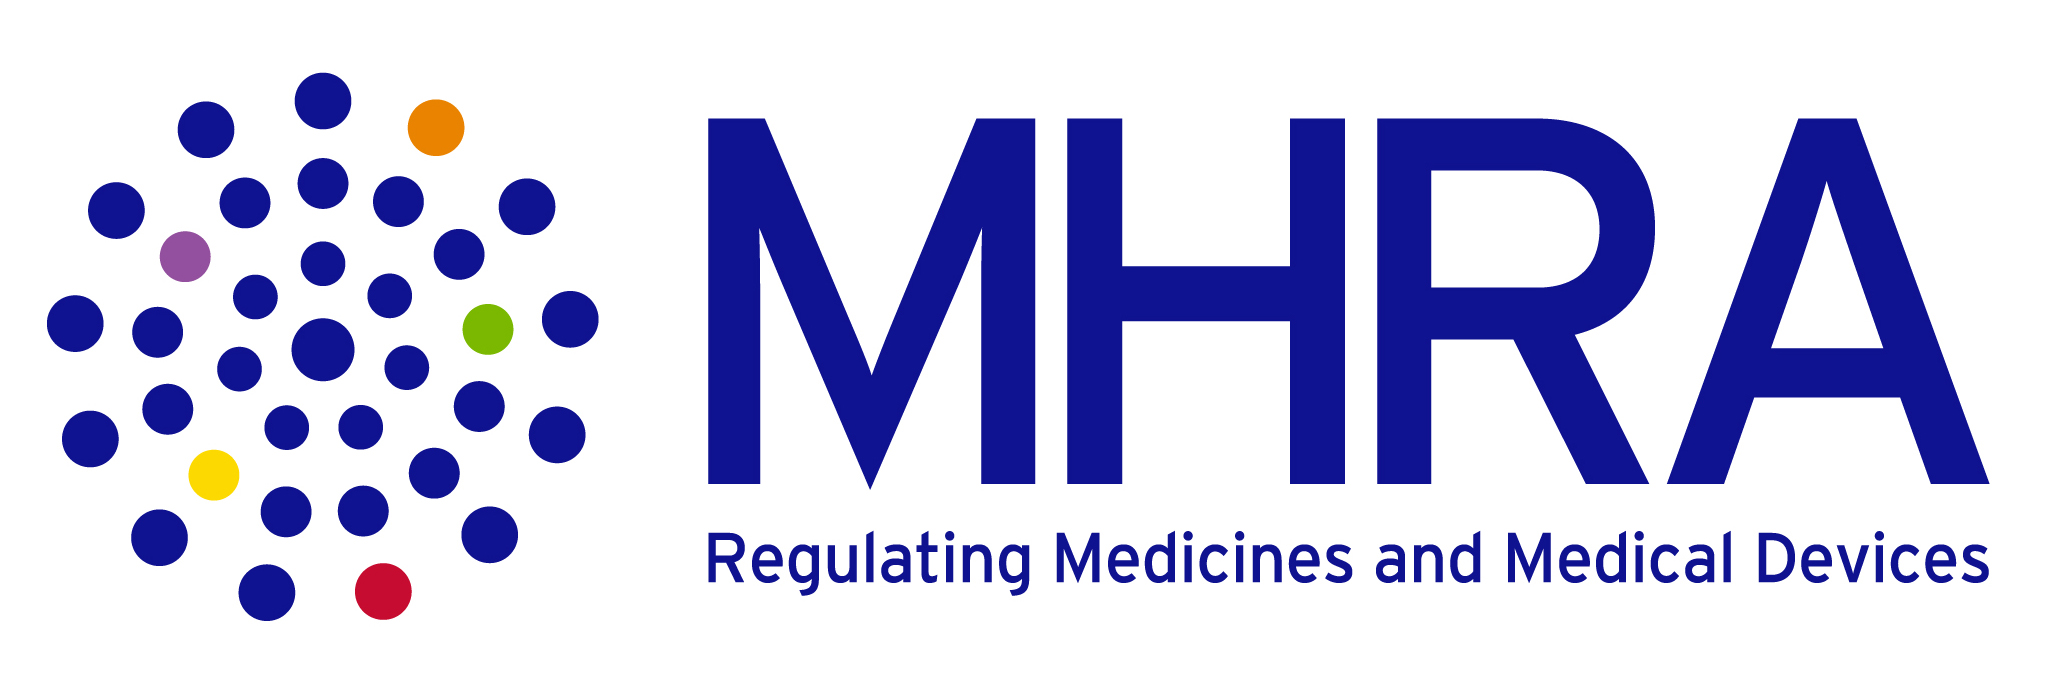 Logo for MHRA Inspectorate